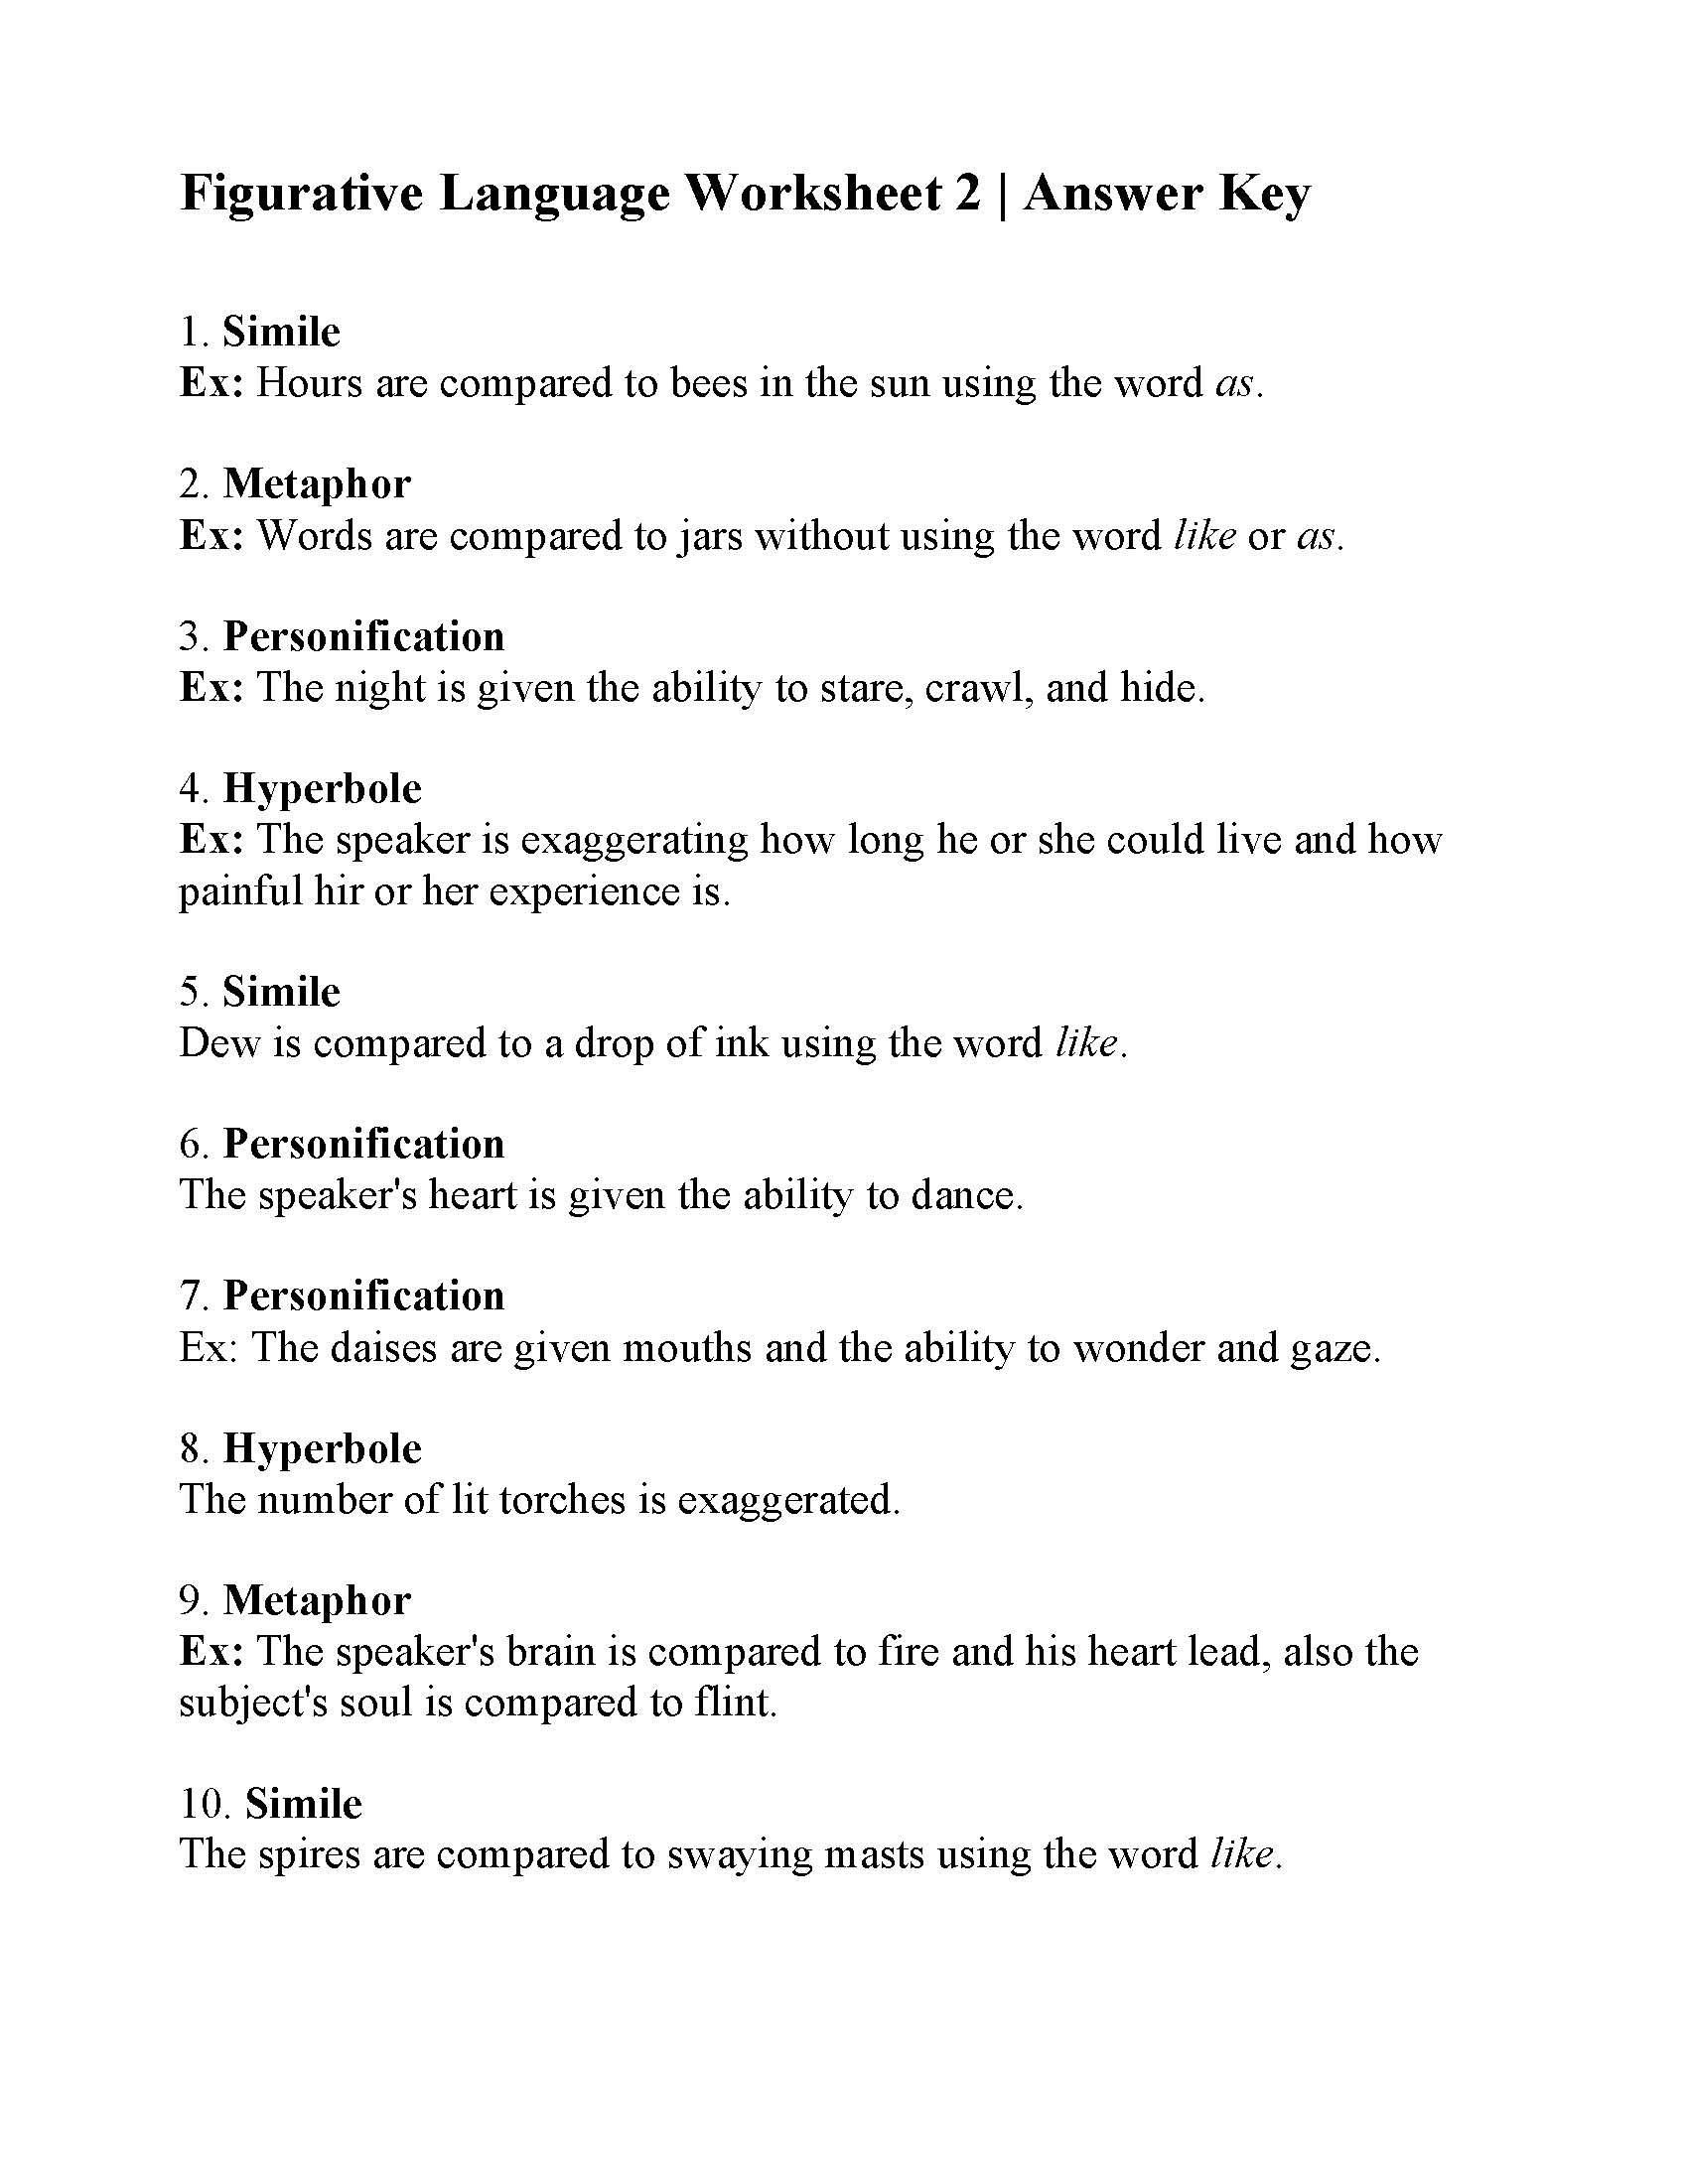 Integrated Physics and Chemistry Worksheets This is the Answer Key for the Figurative Language Worksheet